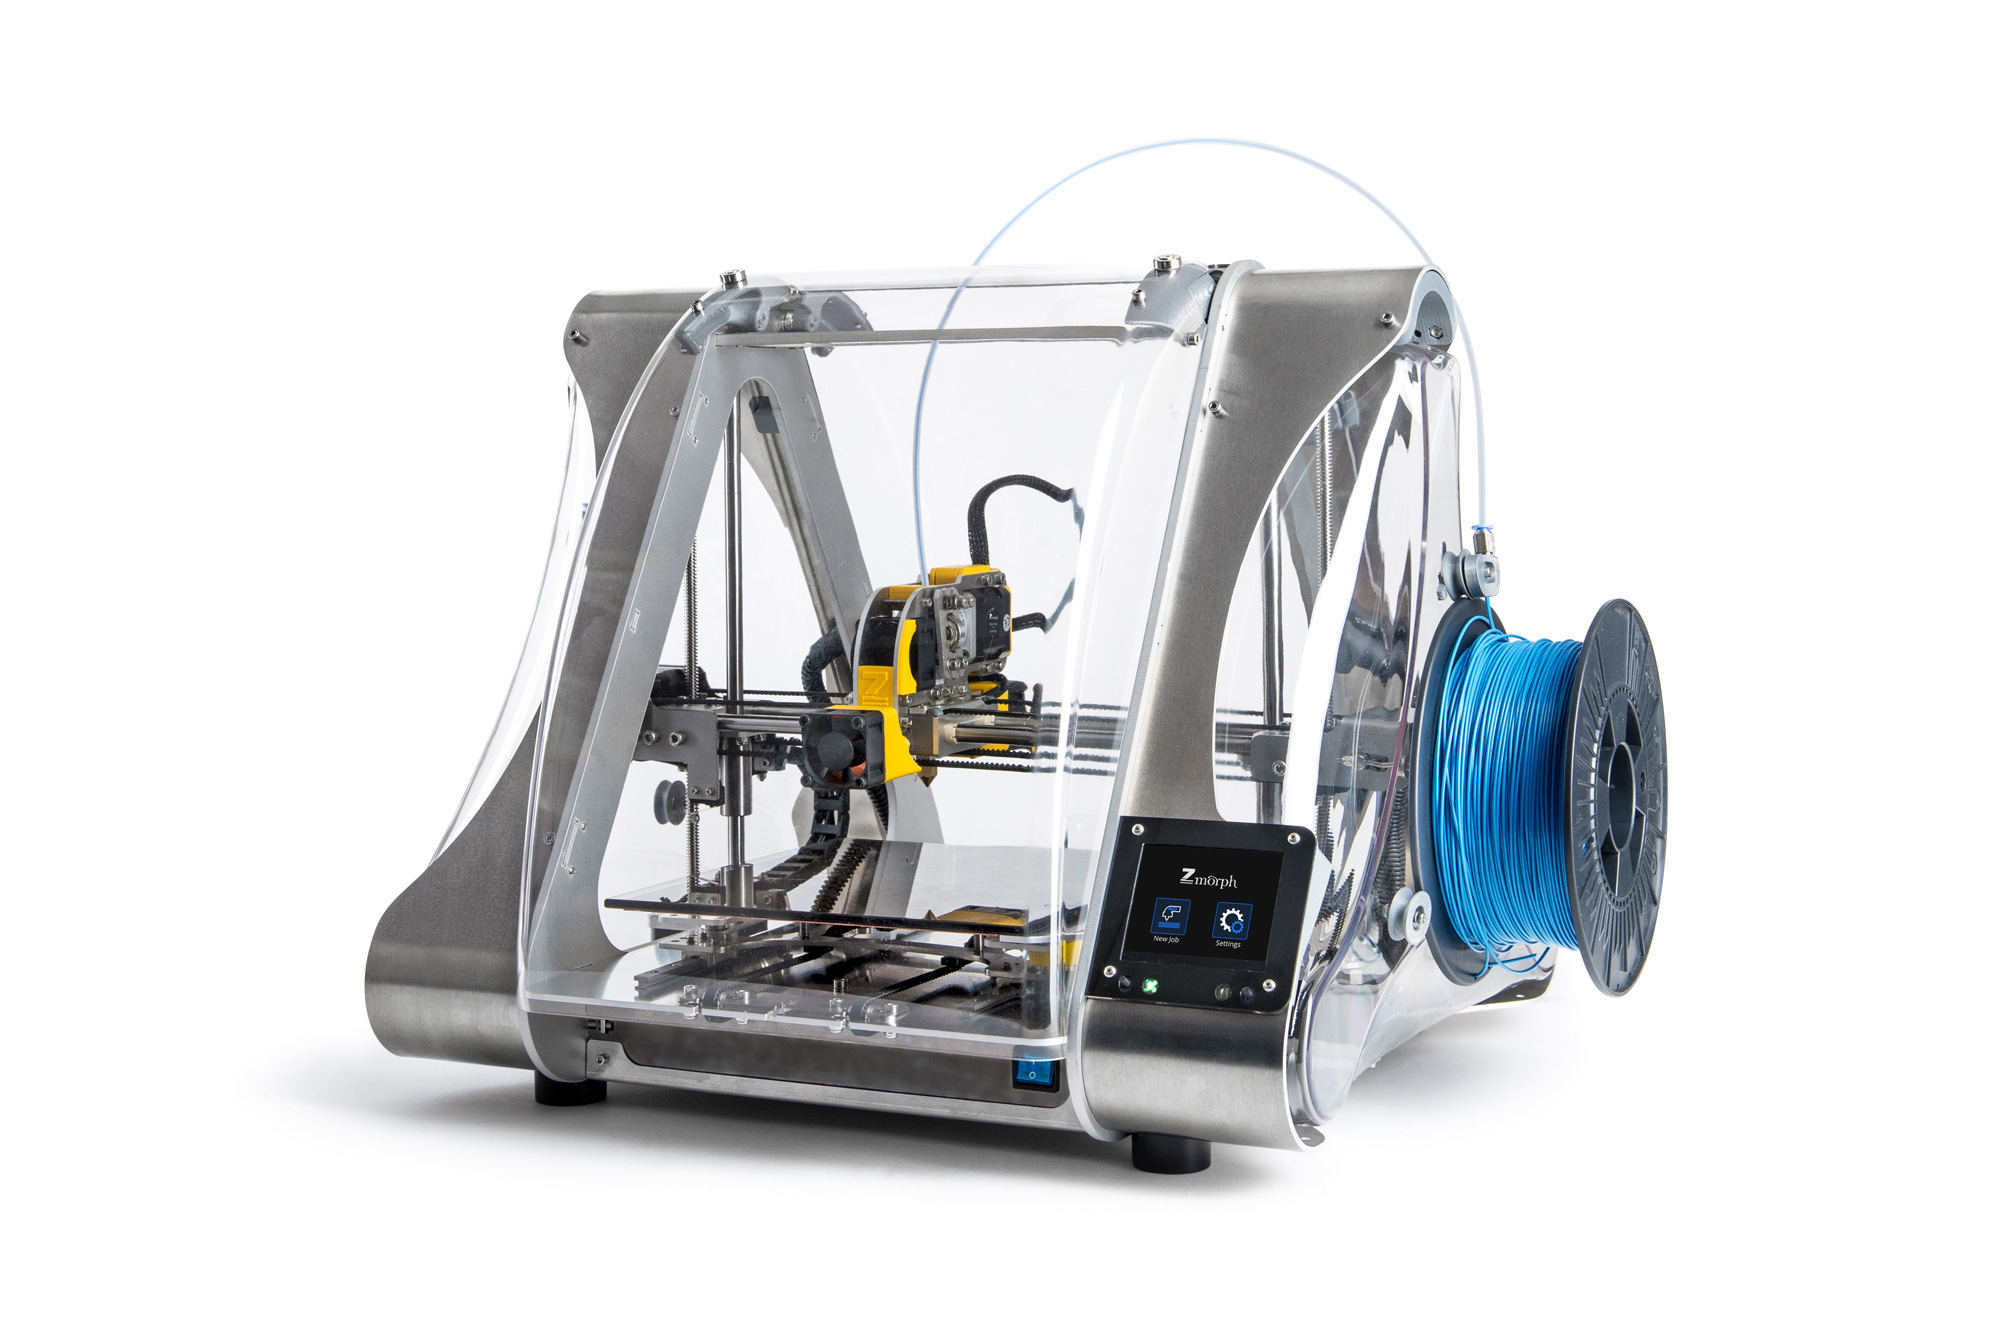 The ZMorph 2.0 SX multitool 3D printer. Image via ZMorph.